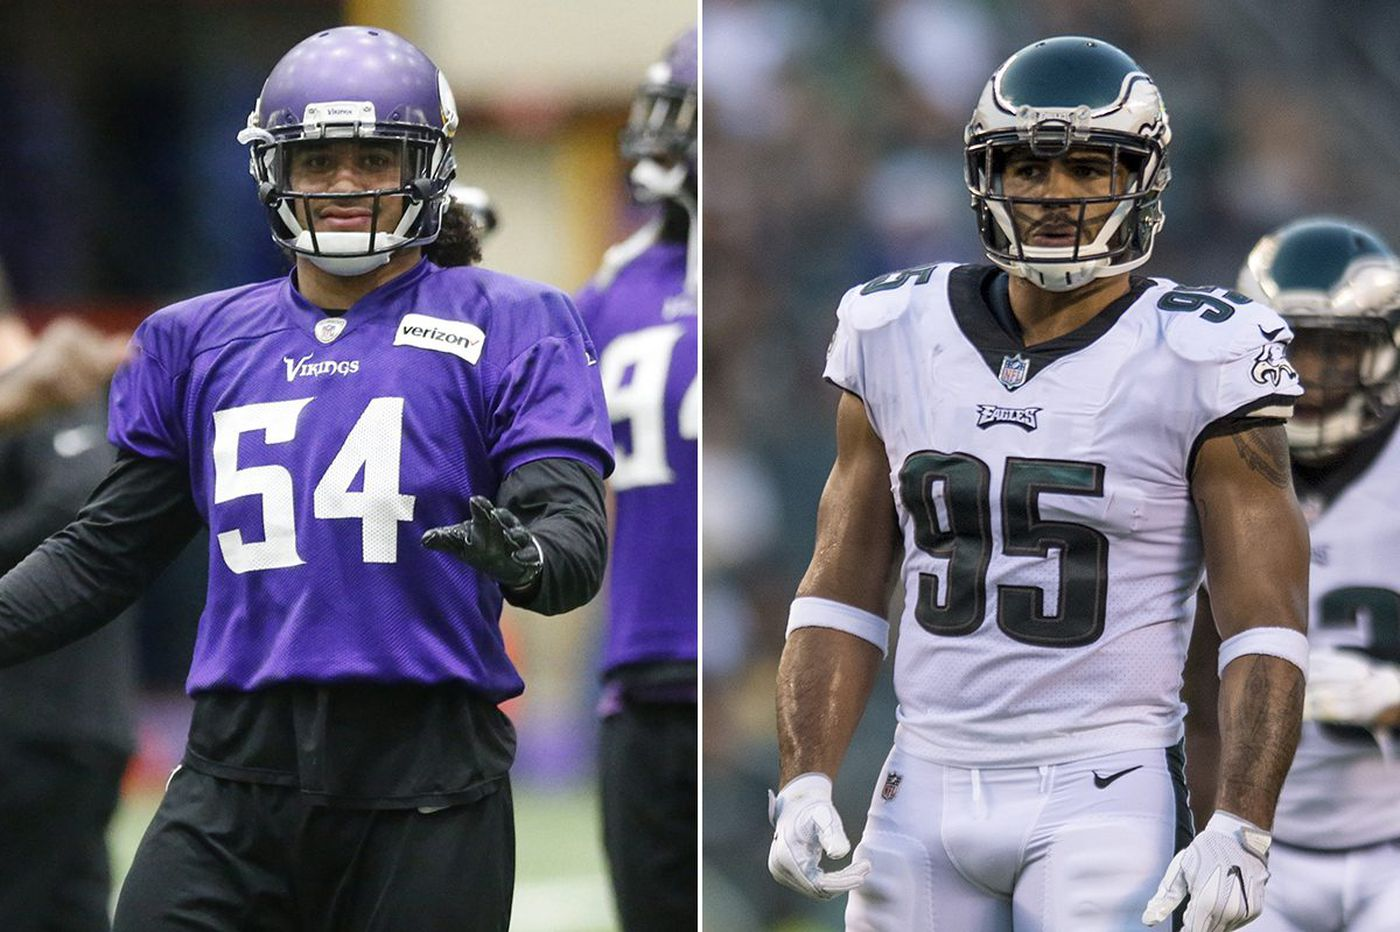 Eagles-Vikings: 10 questions for brothers Mychal and Eric Kendricks